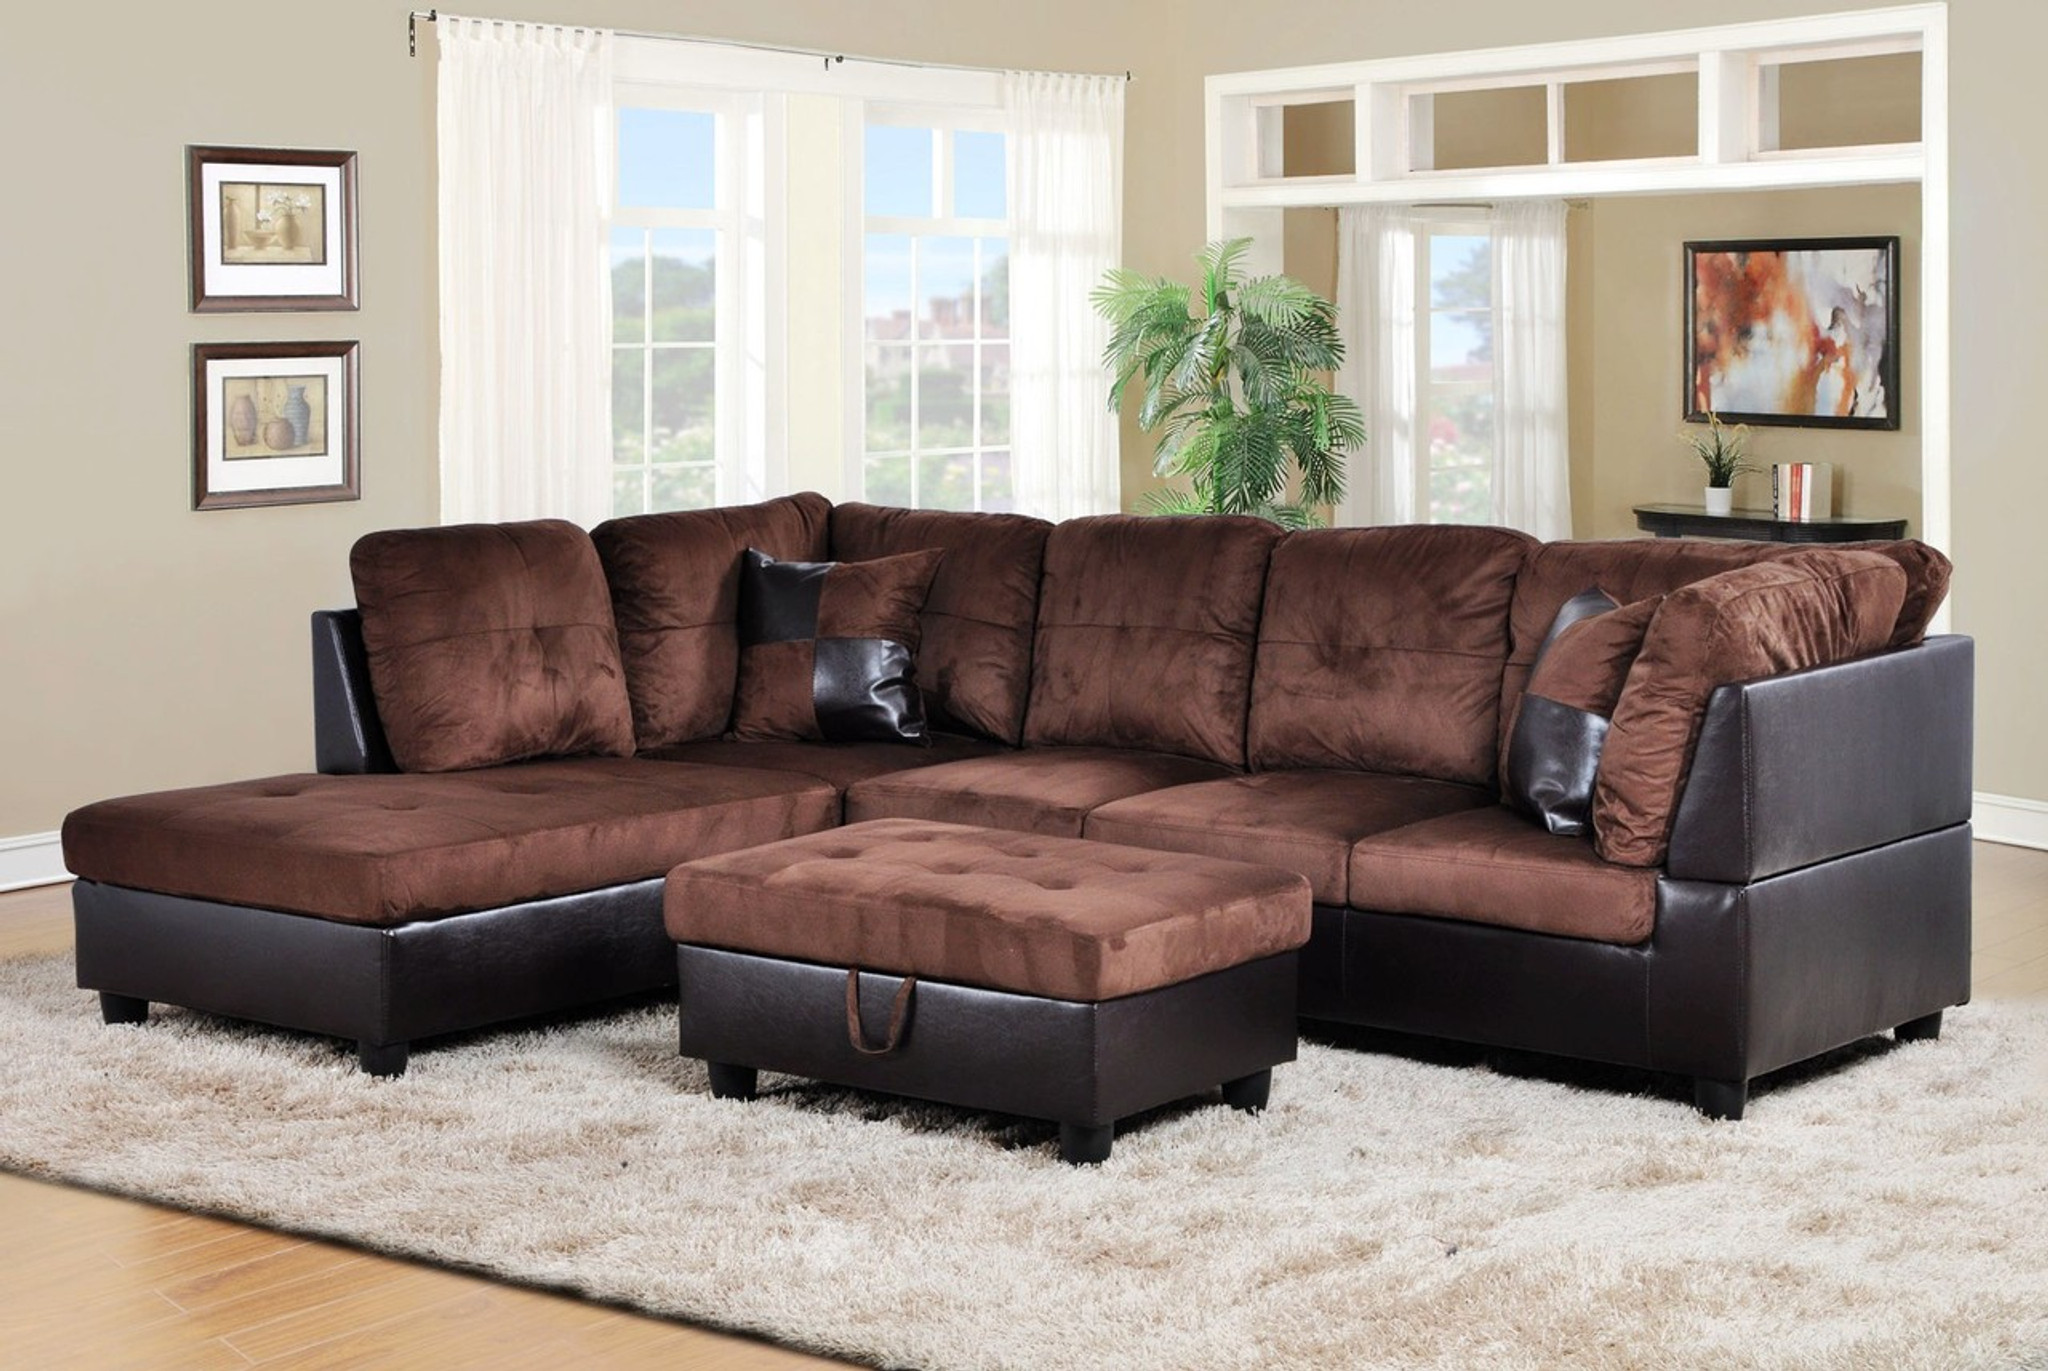 F107a 2 Pcs Alexander Brown Sectional With Accent Pillows Right Facing Sofa Collection By Beverly Furnitures